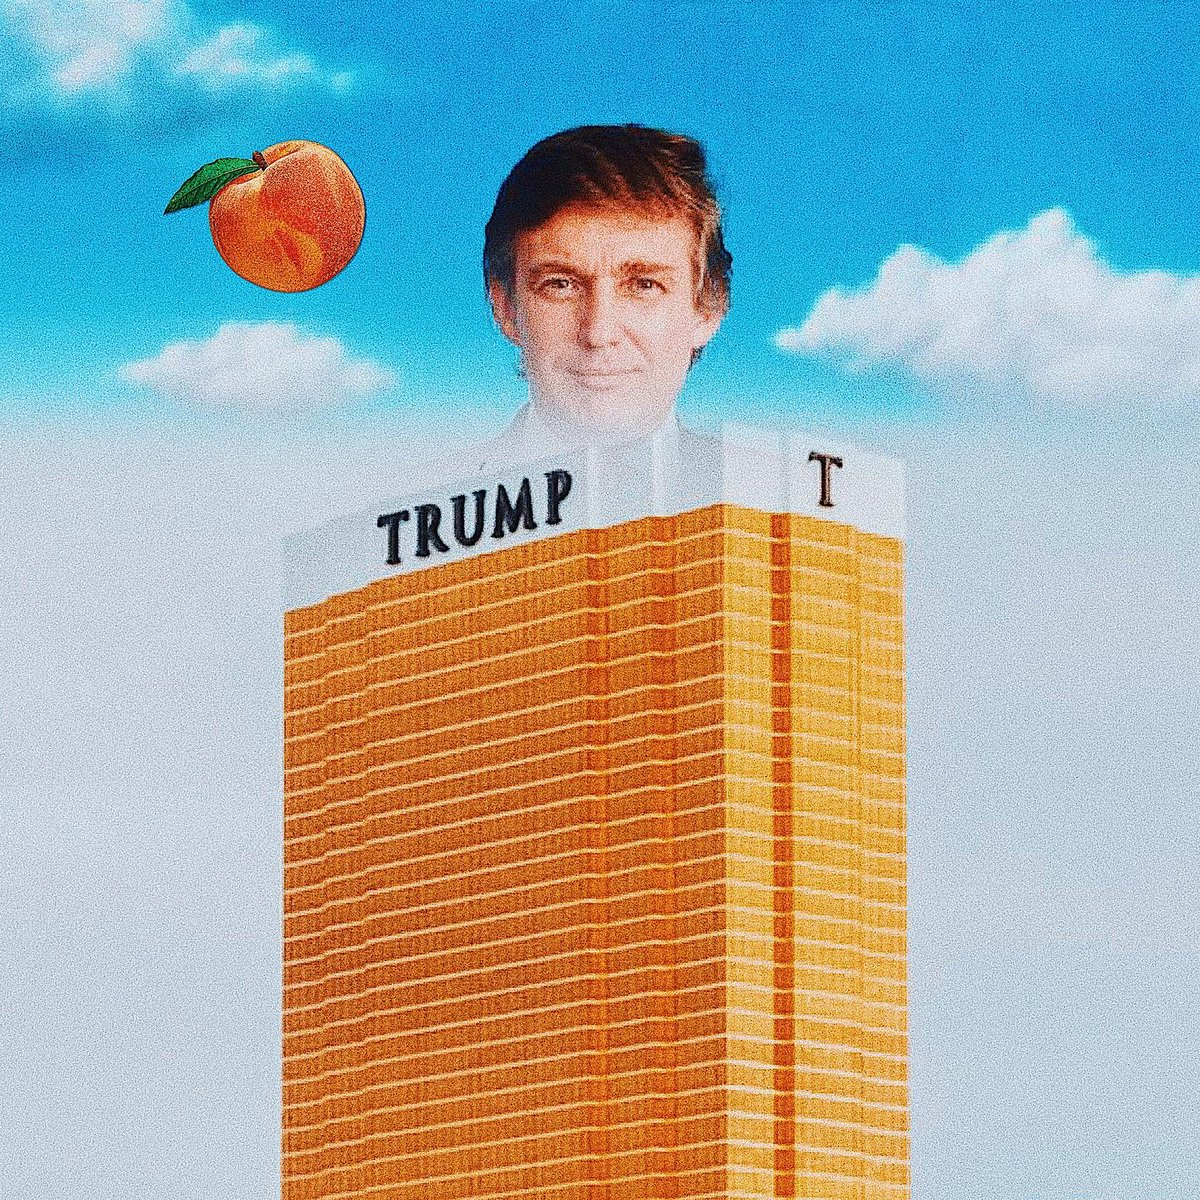 Peachy Clean  Donald Trump http://www.si.edu Trump Tower NV @neonbrand Peach  unknown  Digital Collage @cutfinga #cutfinga #collageclub #collagewave #trump #trumptower #peach #impeachment #collagecollective #collagecollectiveco pic.twitter.com/zFcXEcL4wL